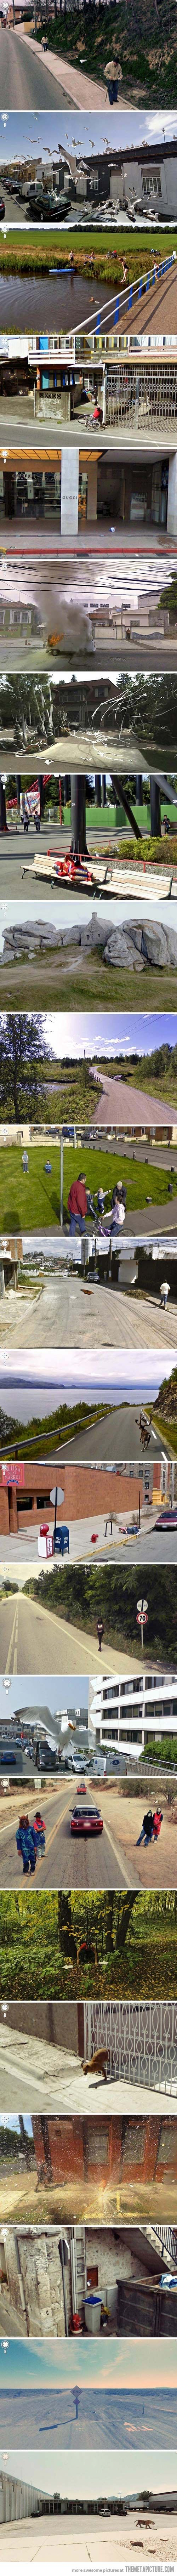 Sh sh show me my house on google earth - 79 Best Crazy Google Earth Pics Images On Pinterest Street View Maps And Weird